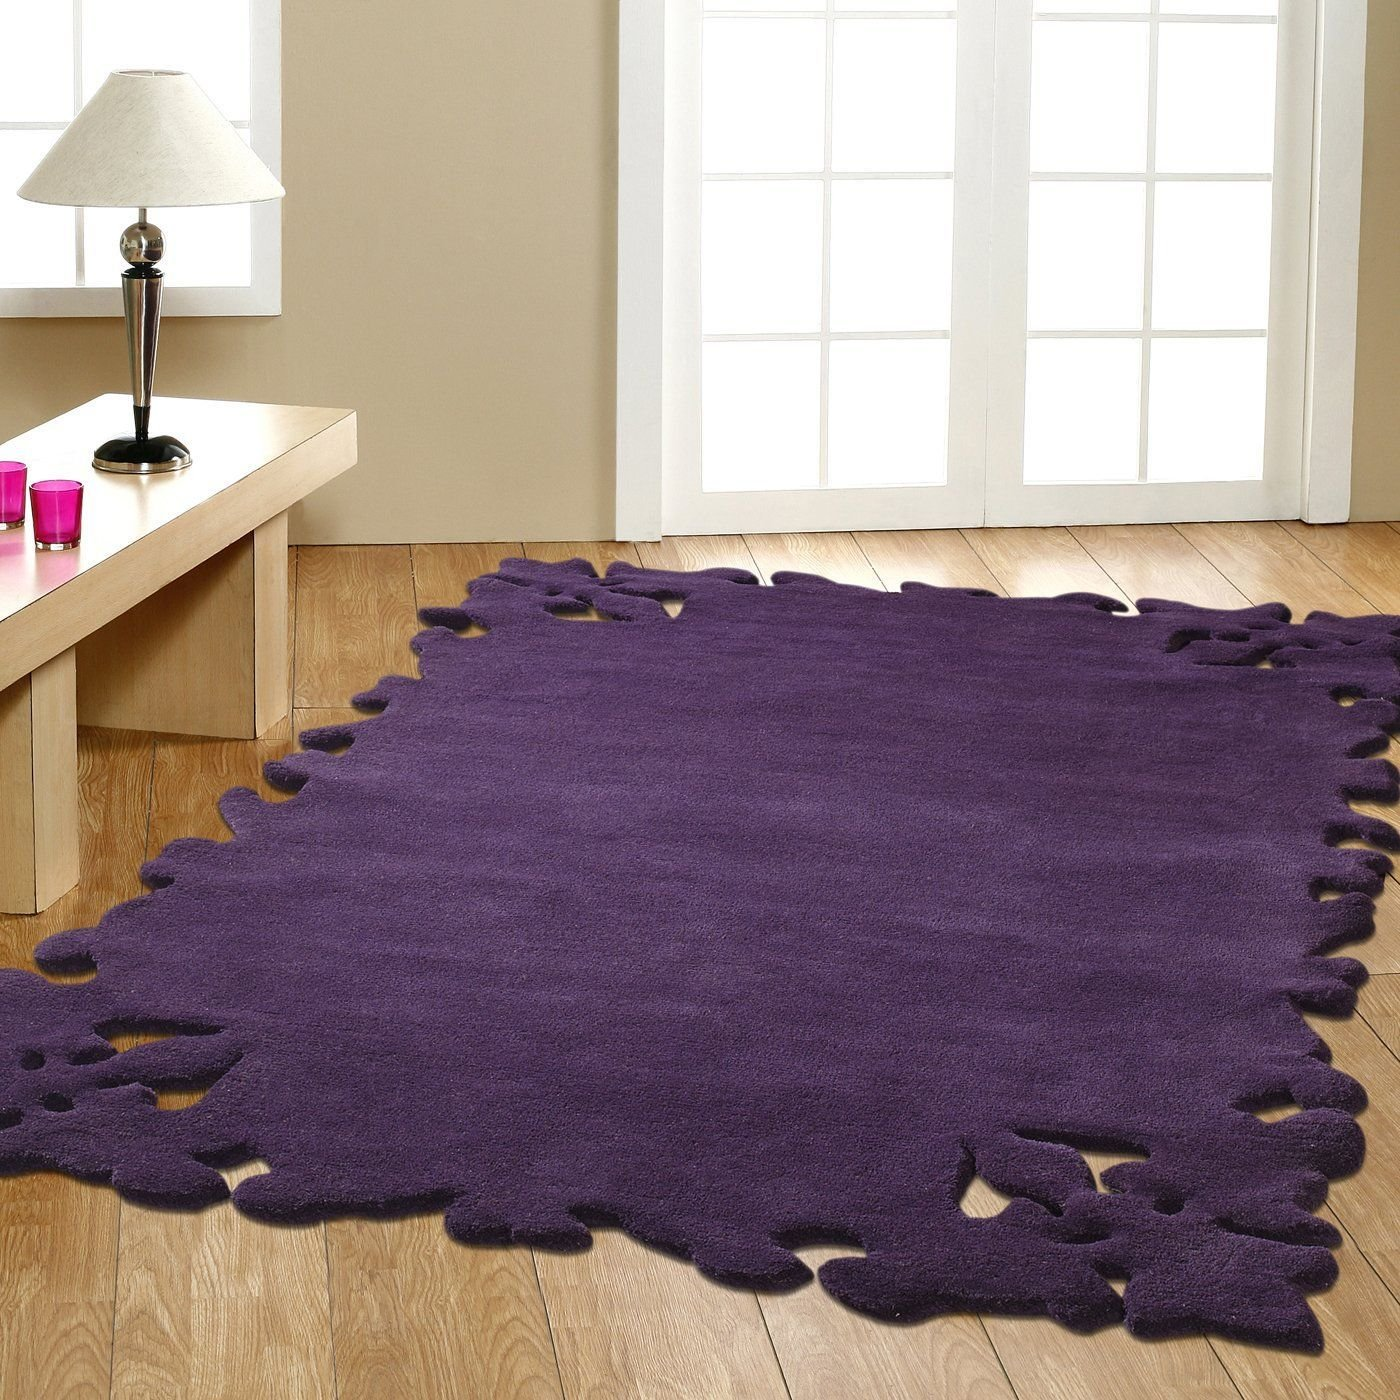 Best Modella Purple Area Rug For My Bedroom C Purple Home Love Pinterest Purple Bedrooms With Pictures